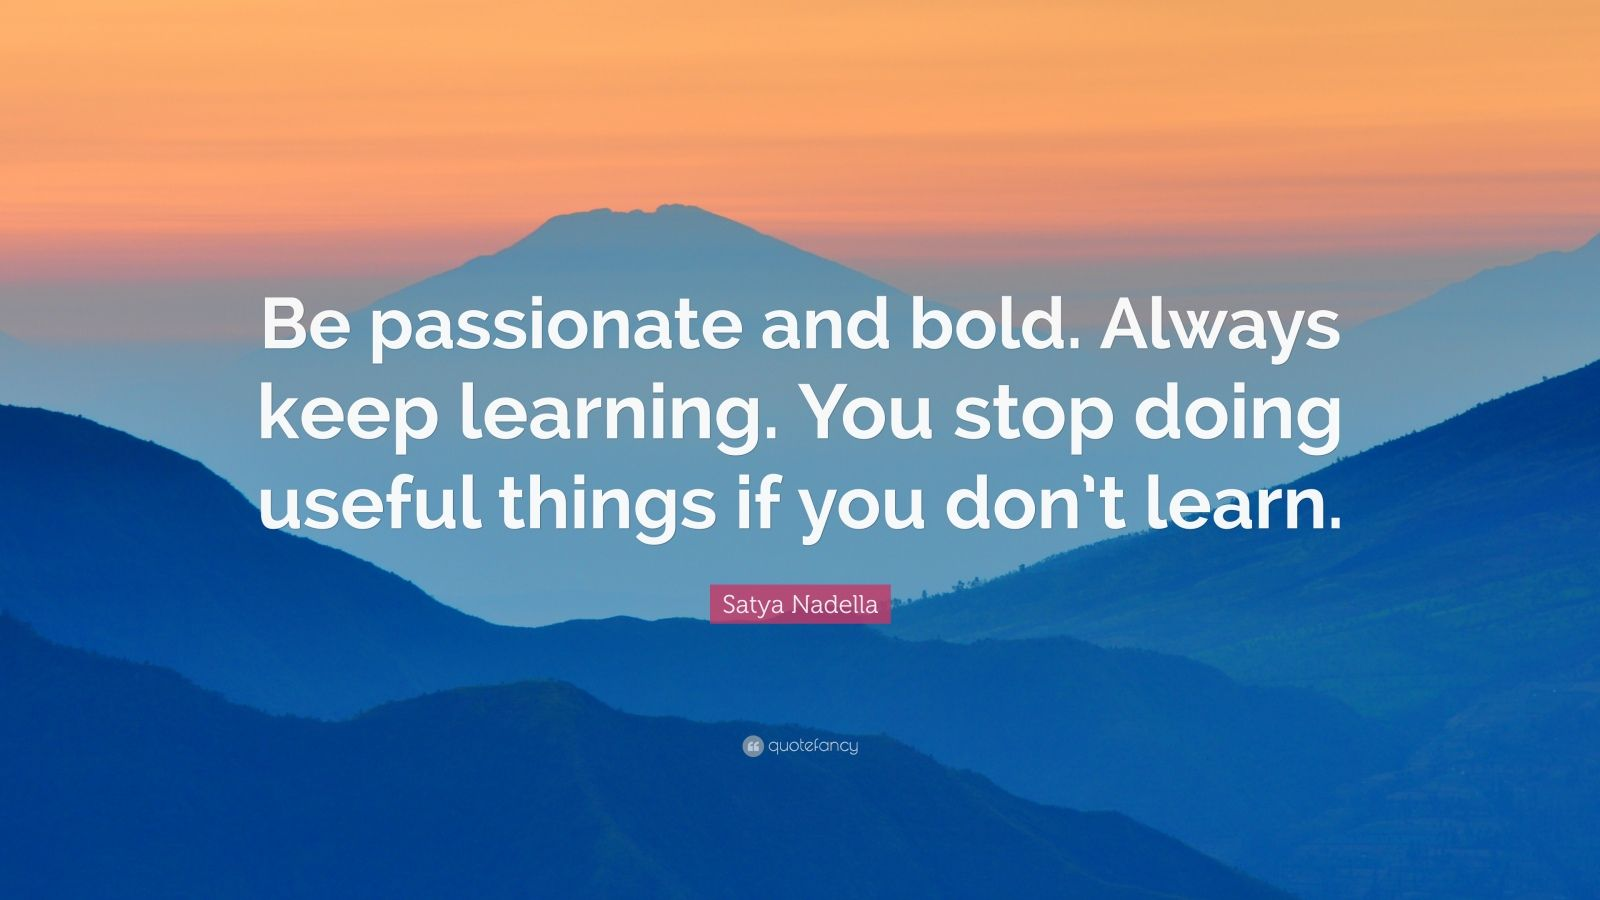 """Satya Nadella Quote: """"Be passionate and bold. Always keep learning. You stop doing useful things if you don't learn."""""""